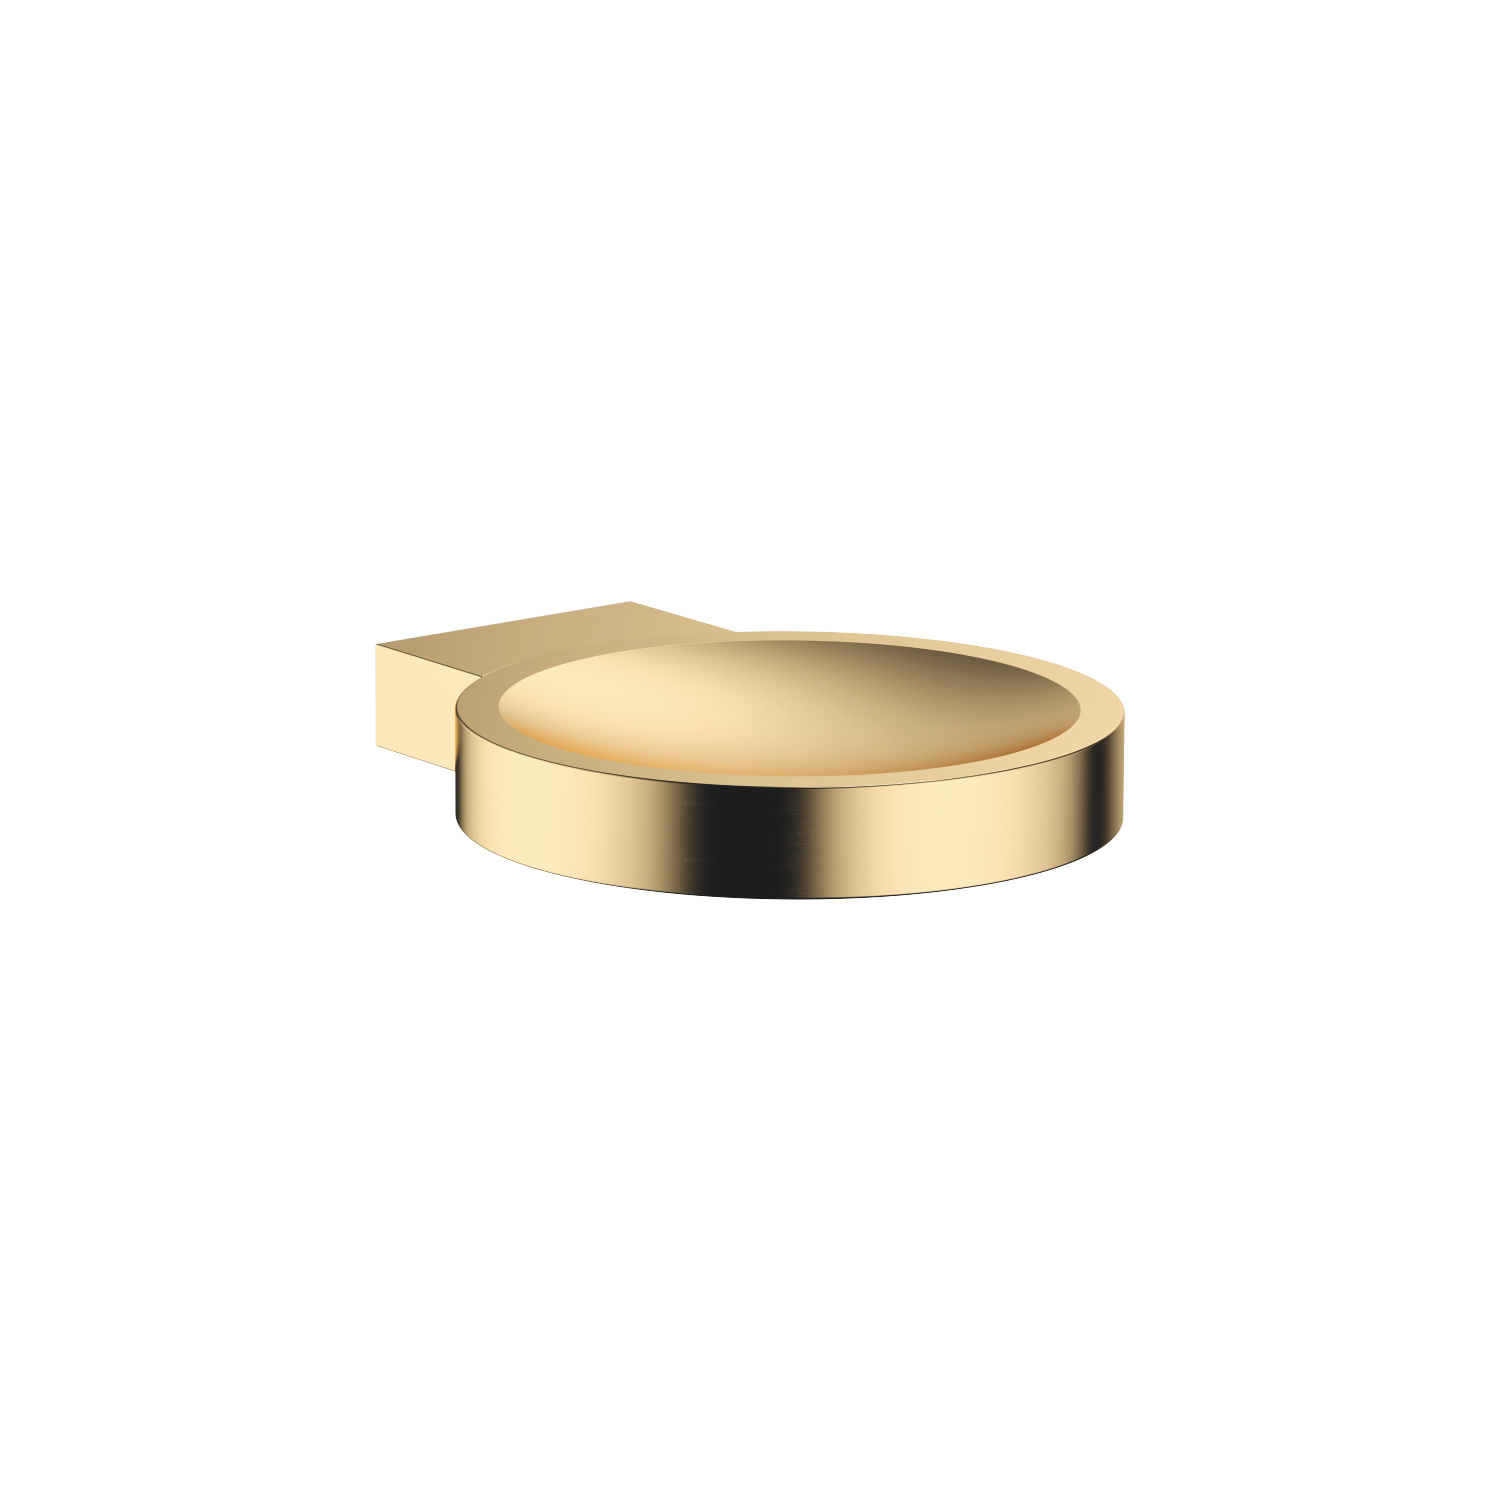 Soap dish wall model - brushed Durabrass - 83 410 979-28